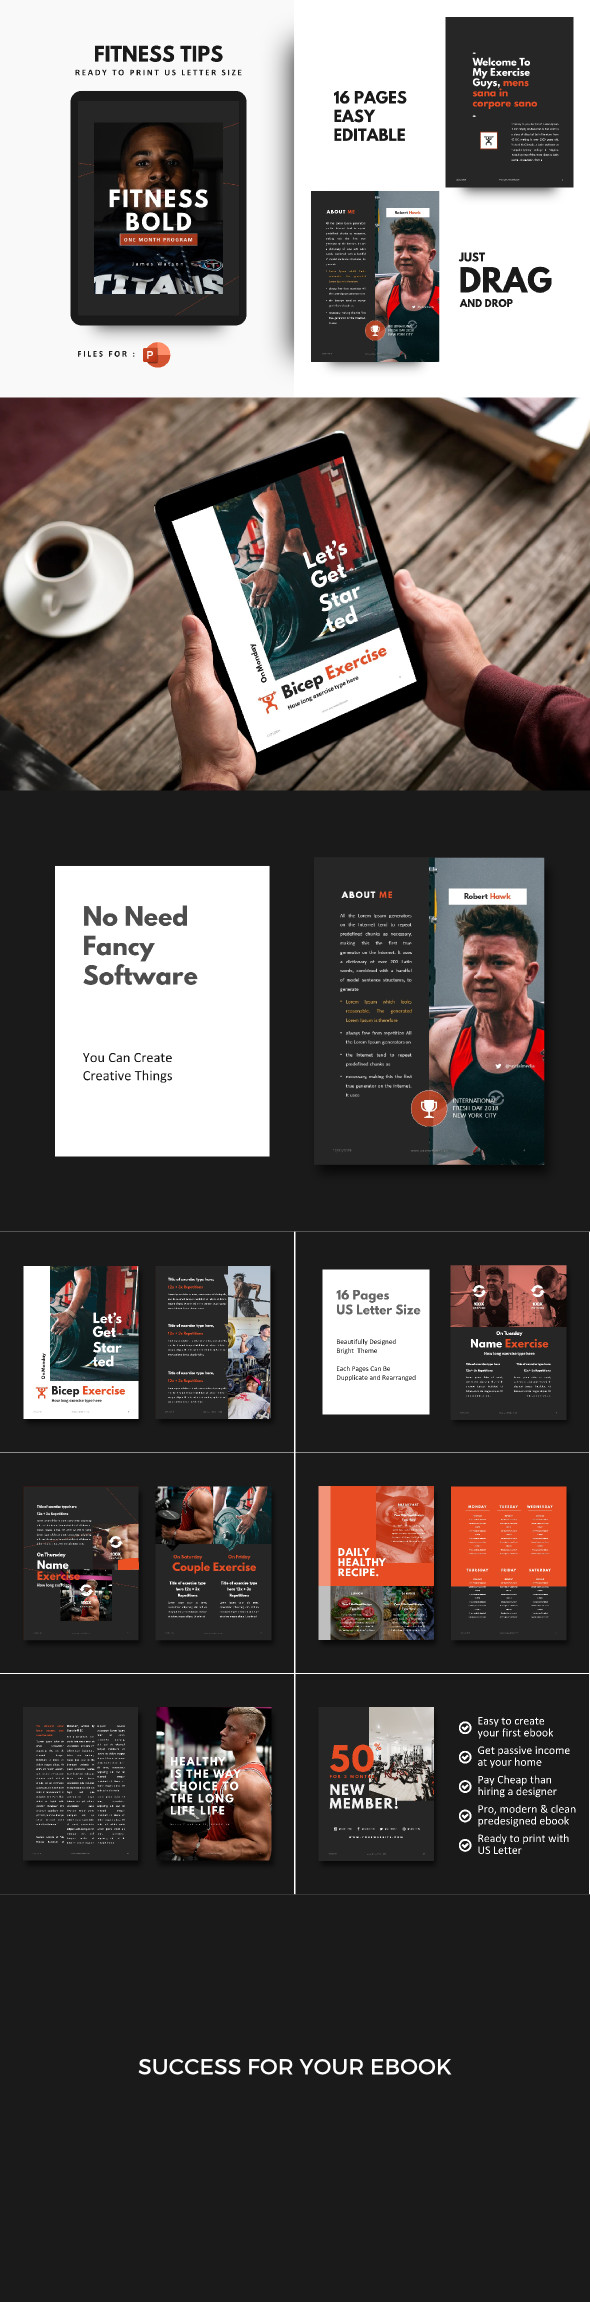 Fitness Bold eBook Template PowerPoint